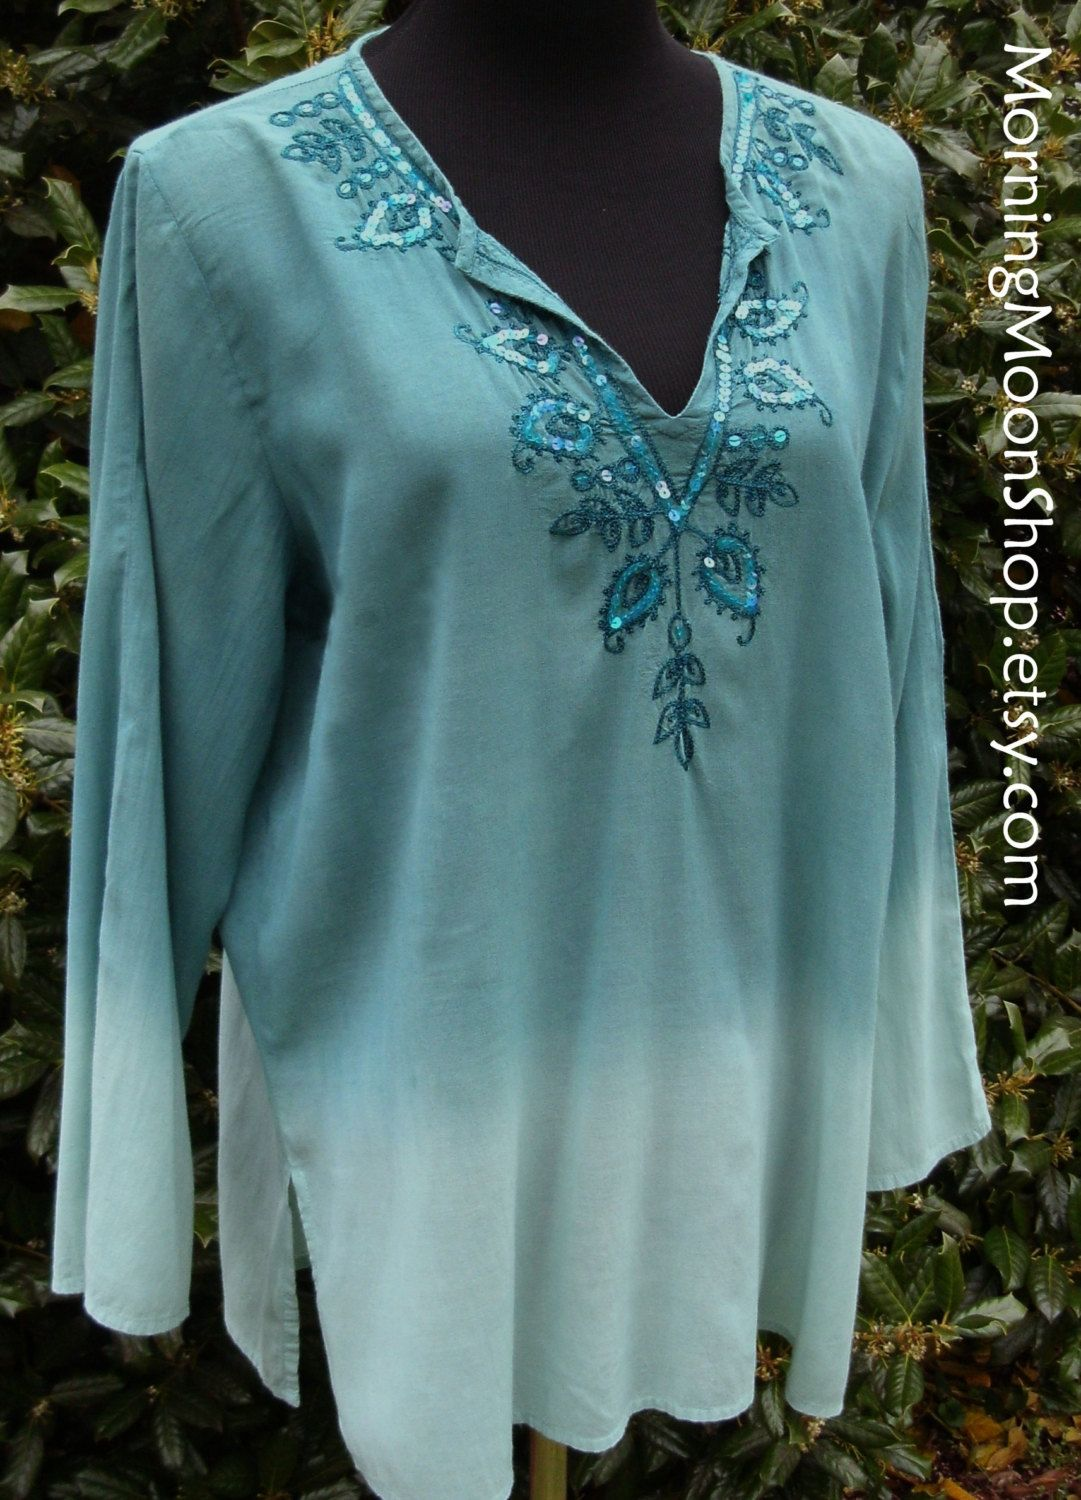 Turquoise HIPPIE SHIRT, sequined cotton/rayon gauze Tunic Top, teal blue-green Ombre, embroidered, Vintage 90s BOHO Chic, Festival wear, M by MorningMoonShop on Etsy